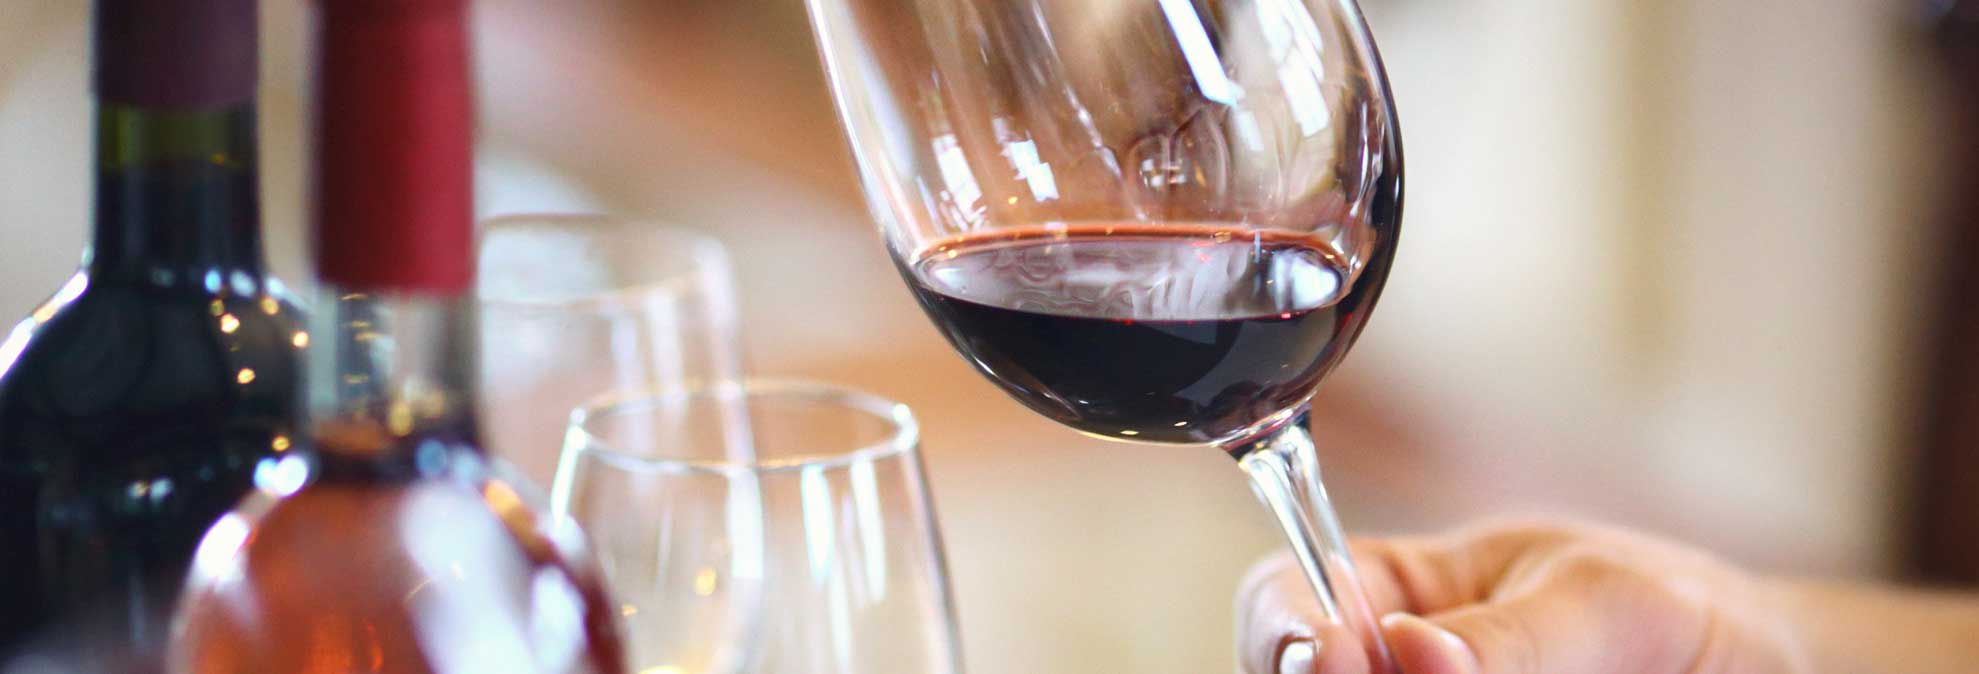 Best Wine Buying Guide Consumer Reports